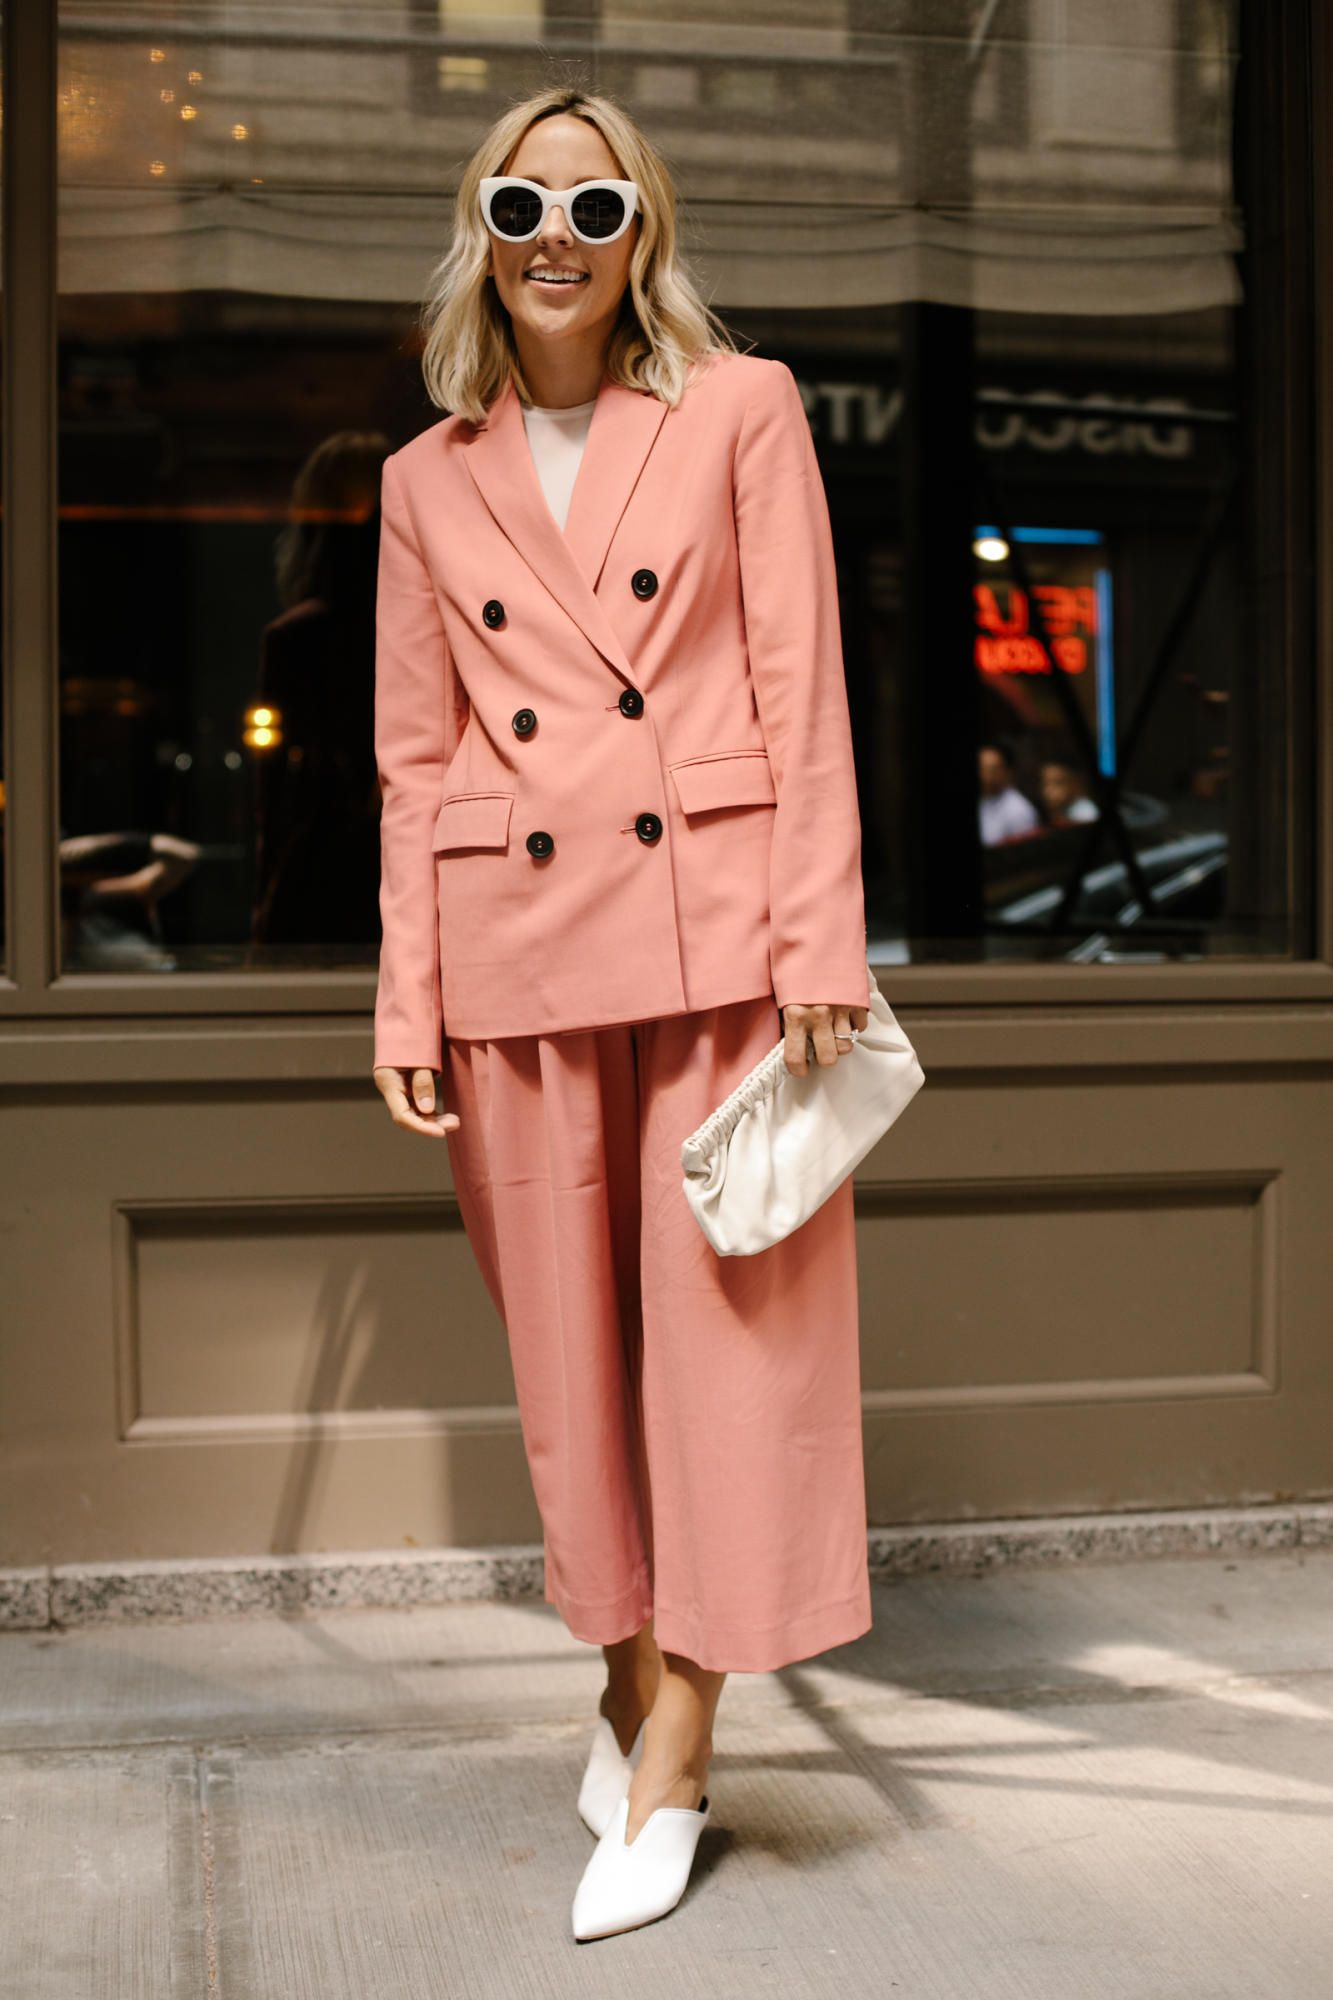 Pretty chic at New York Fashion Week